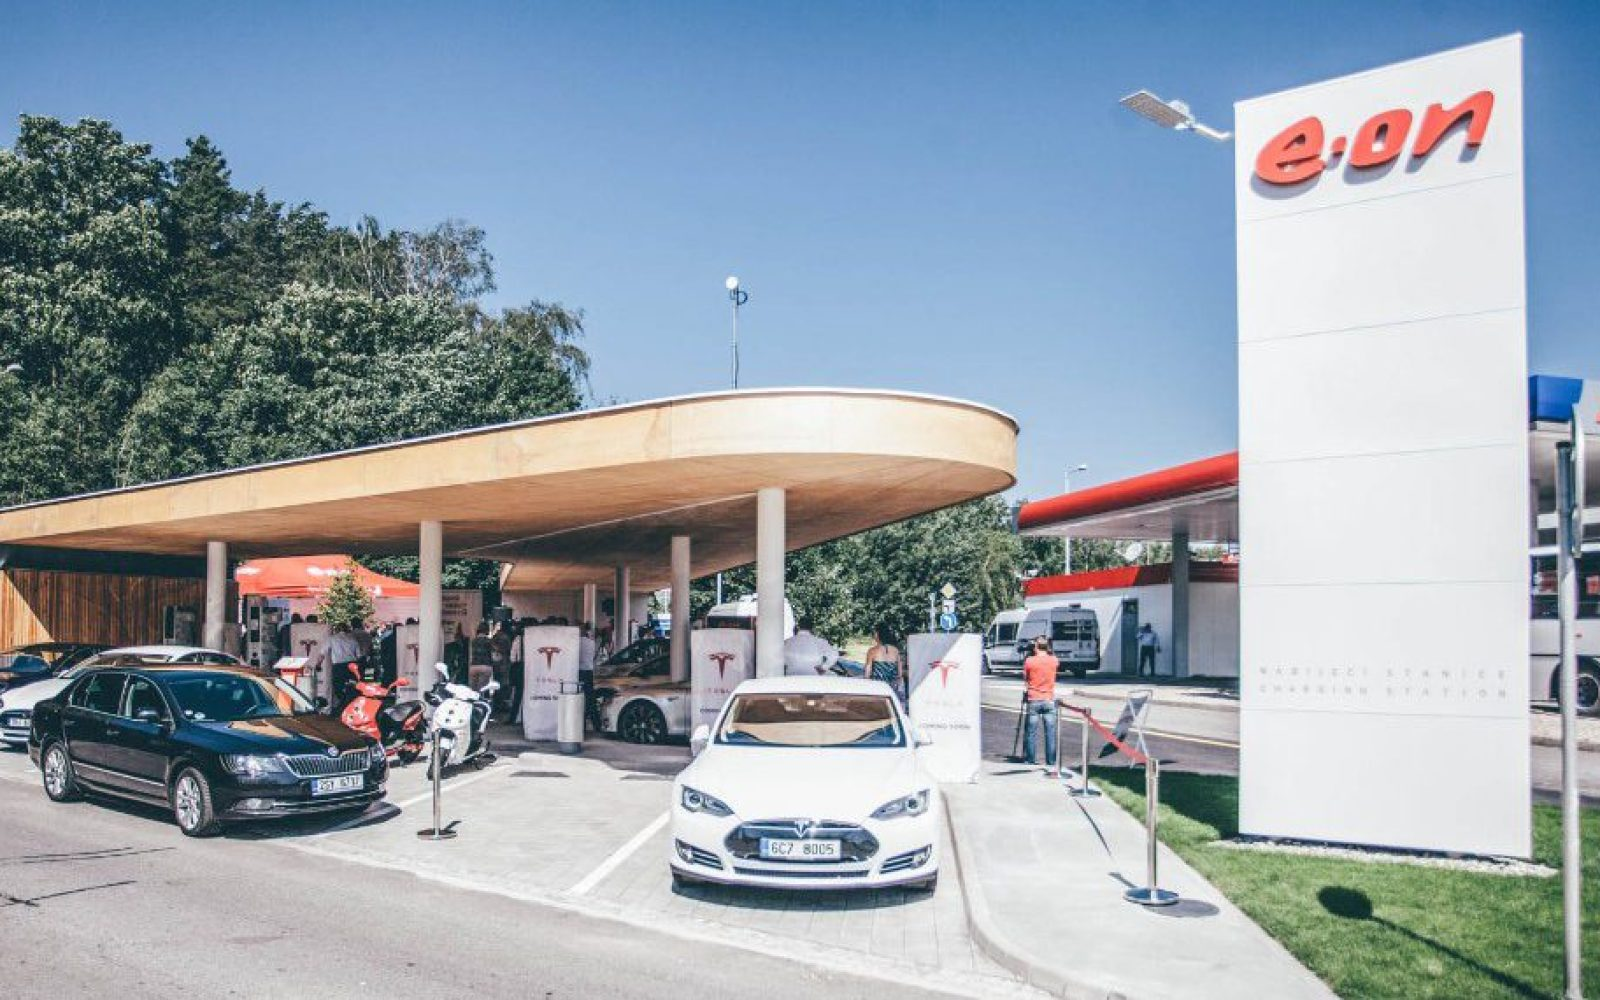 Tesla's first Supercharger in Czech Republic is in an impressive charging station [Gallery]